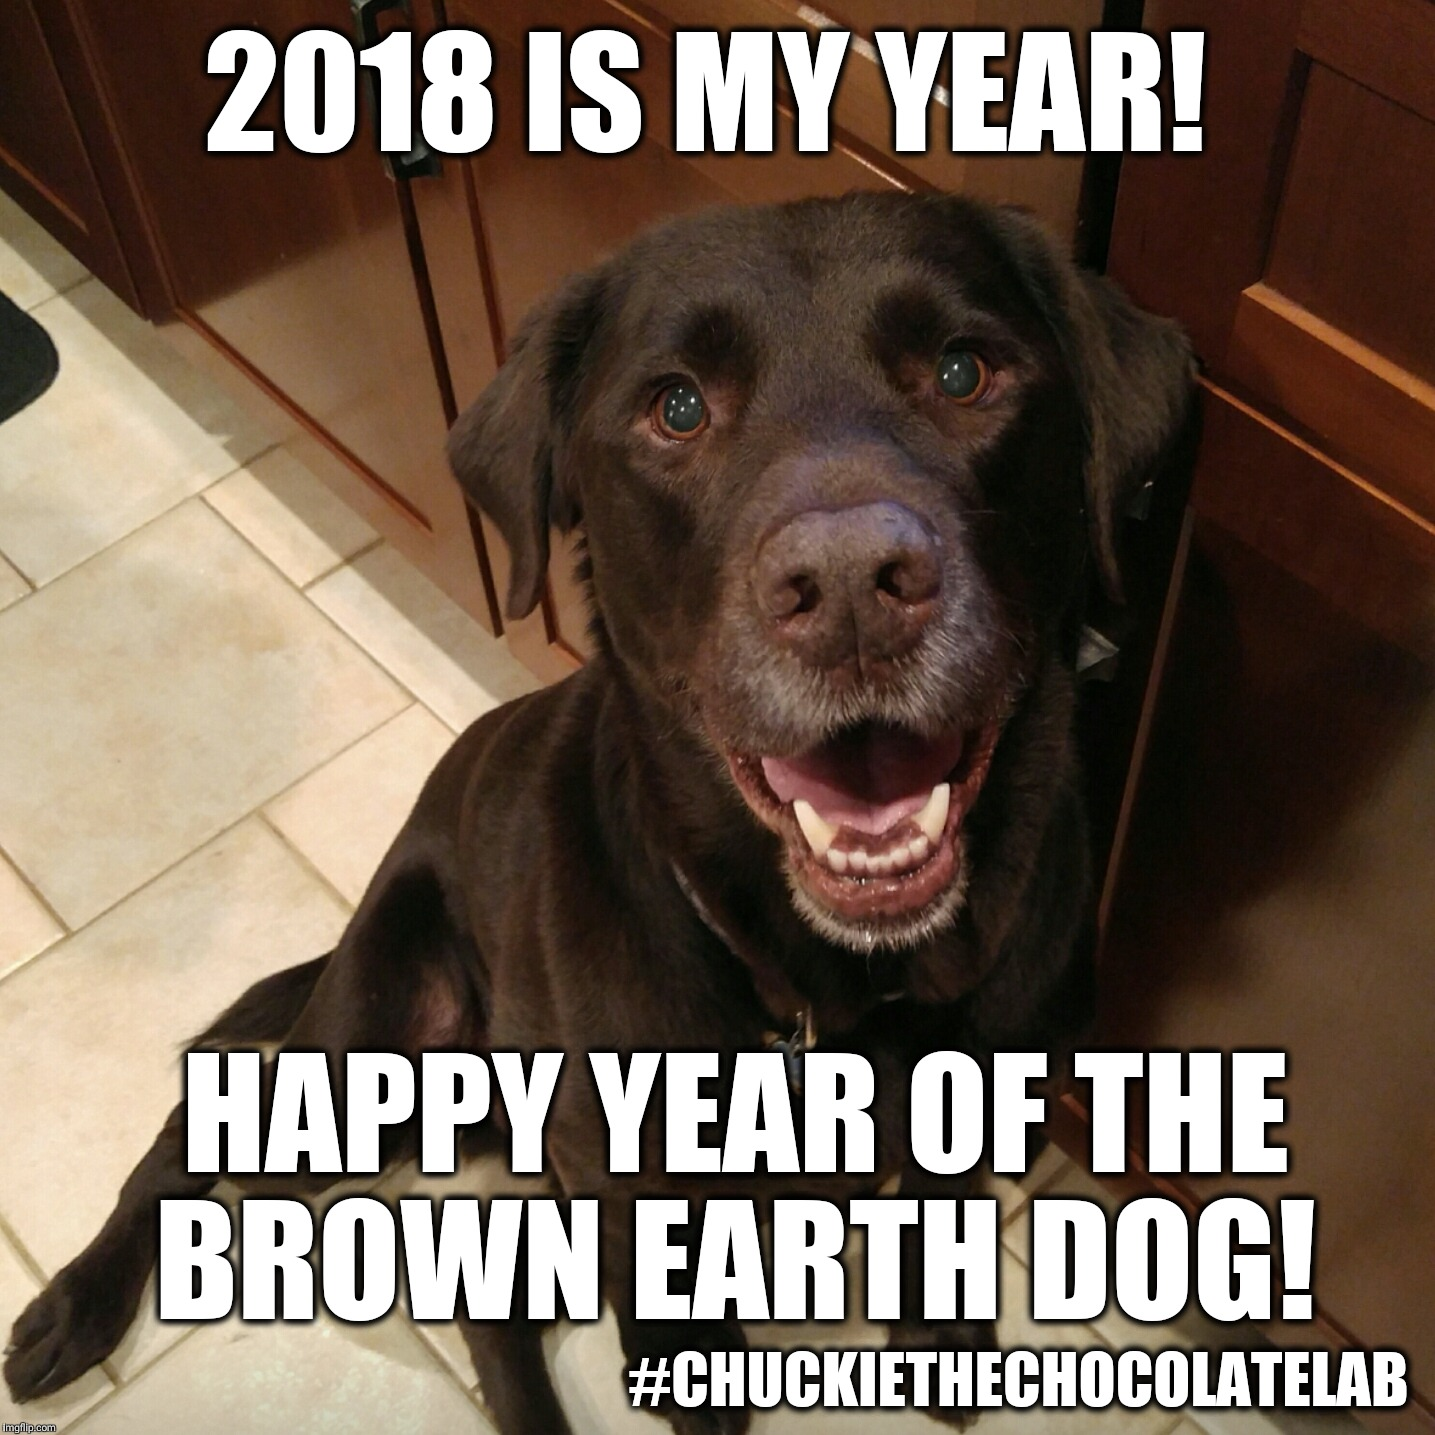 Happy Chinese New Year 2018  | 2018 IS MY YEAR! #CHUCKIETHECHOCOLATELAB HAPPY YEAR OF THE BROWN EARTH DOG! | image tagged in chuckie the chocolate lab teamchuckie,2018,chinese new year,year of the dog,dogs,memes | made w/ Imgflip meme maker